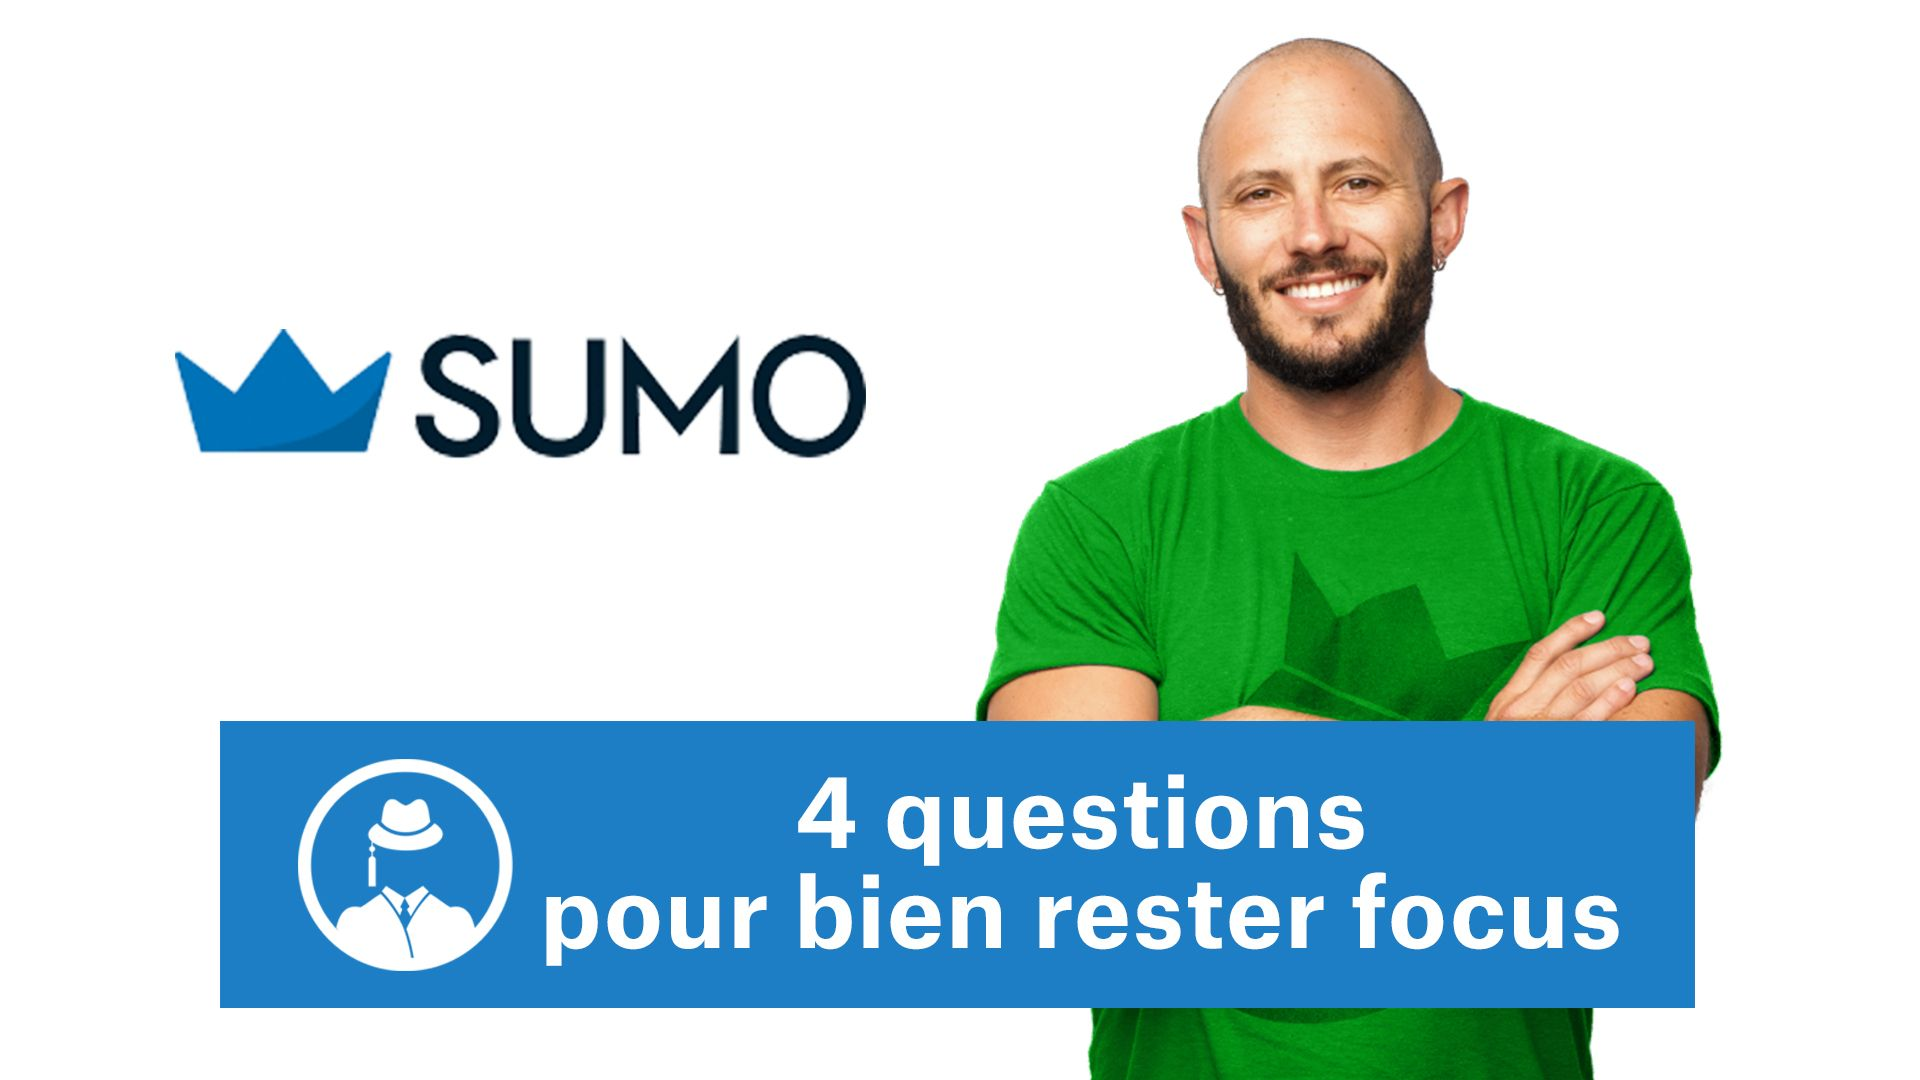 4 questions pour bien rester focus #GrowthHacking #WebMarketing #FormationGrowthHacking #CentreDeFormationFrance #TunnelAARRR #AARRR #SocialMedia #CommunityManagement #SEO